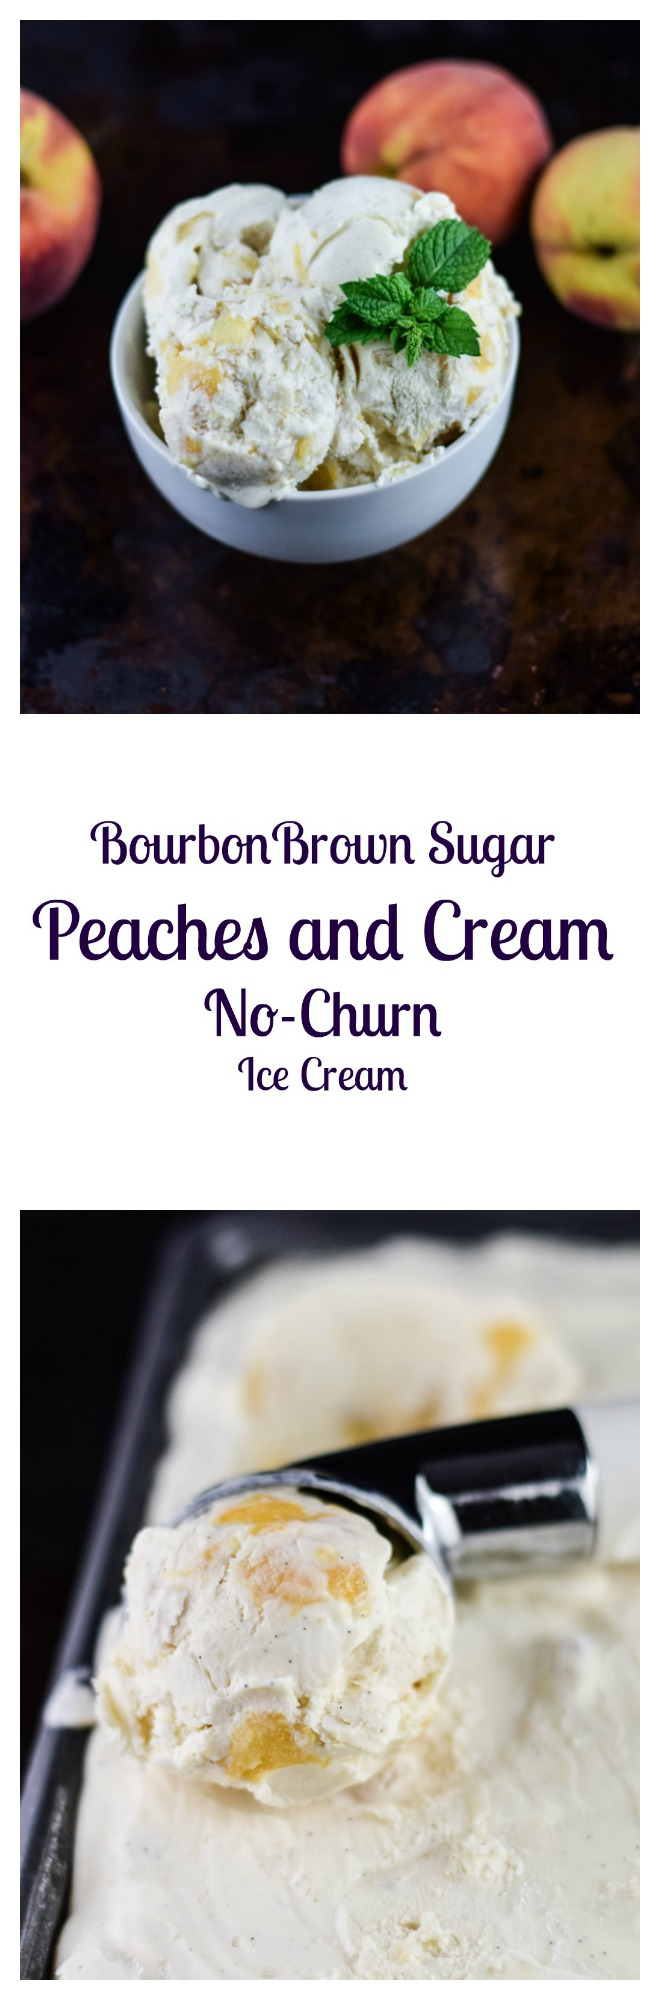 Bourbon Brown Sugar Peaches and Cream No-Churn Ice Cream - Beer Girl ...